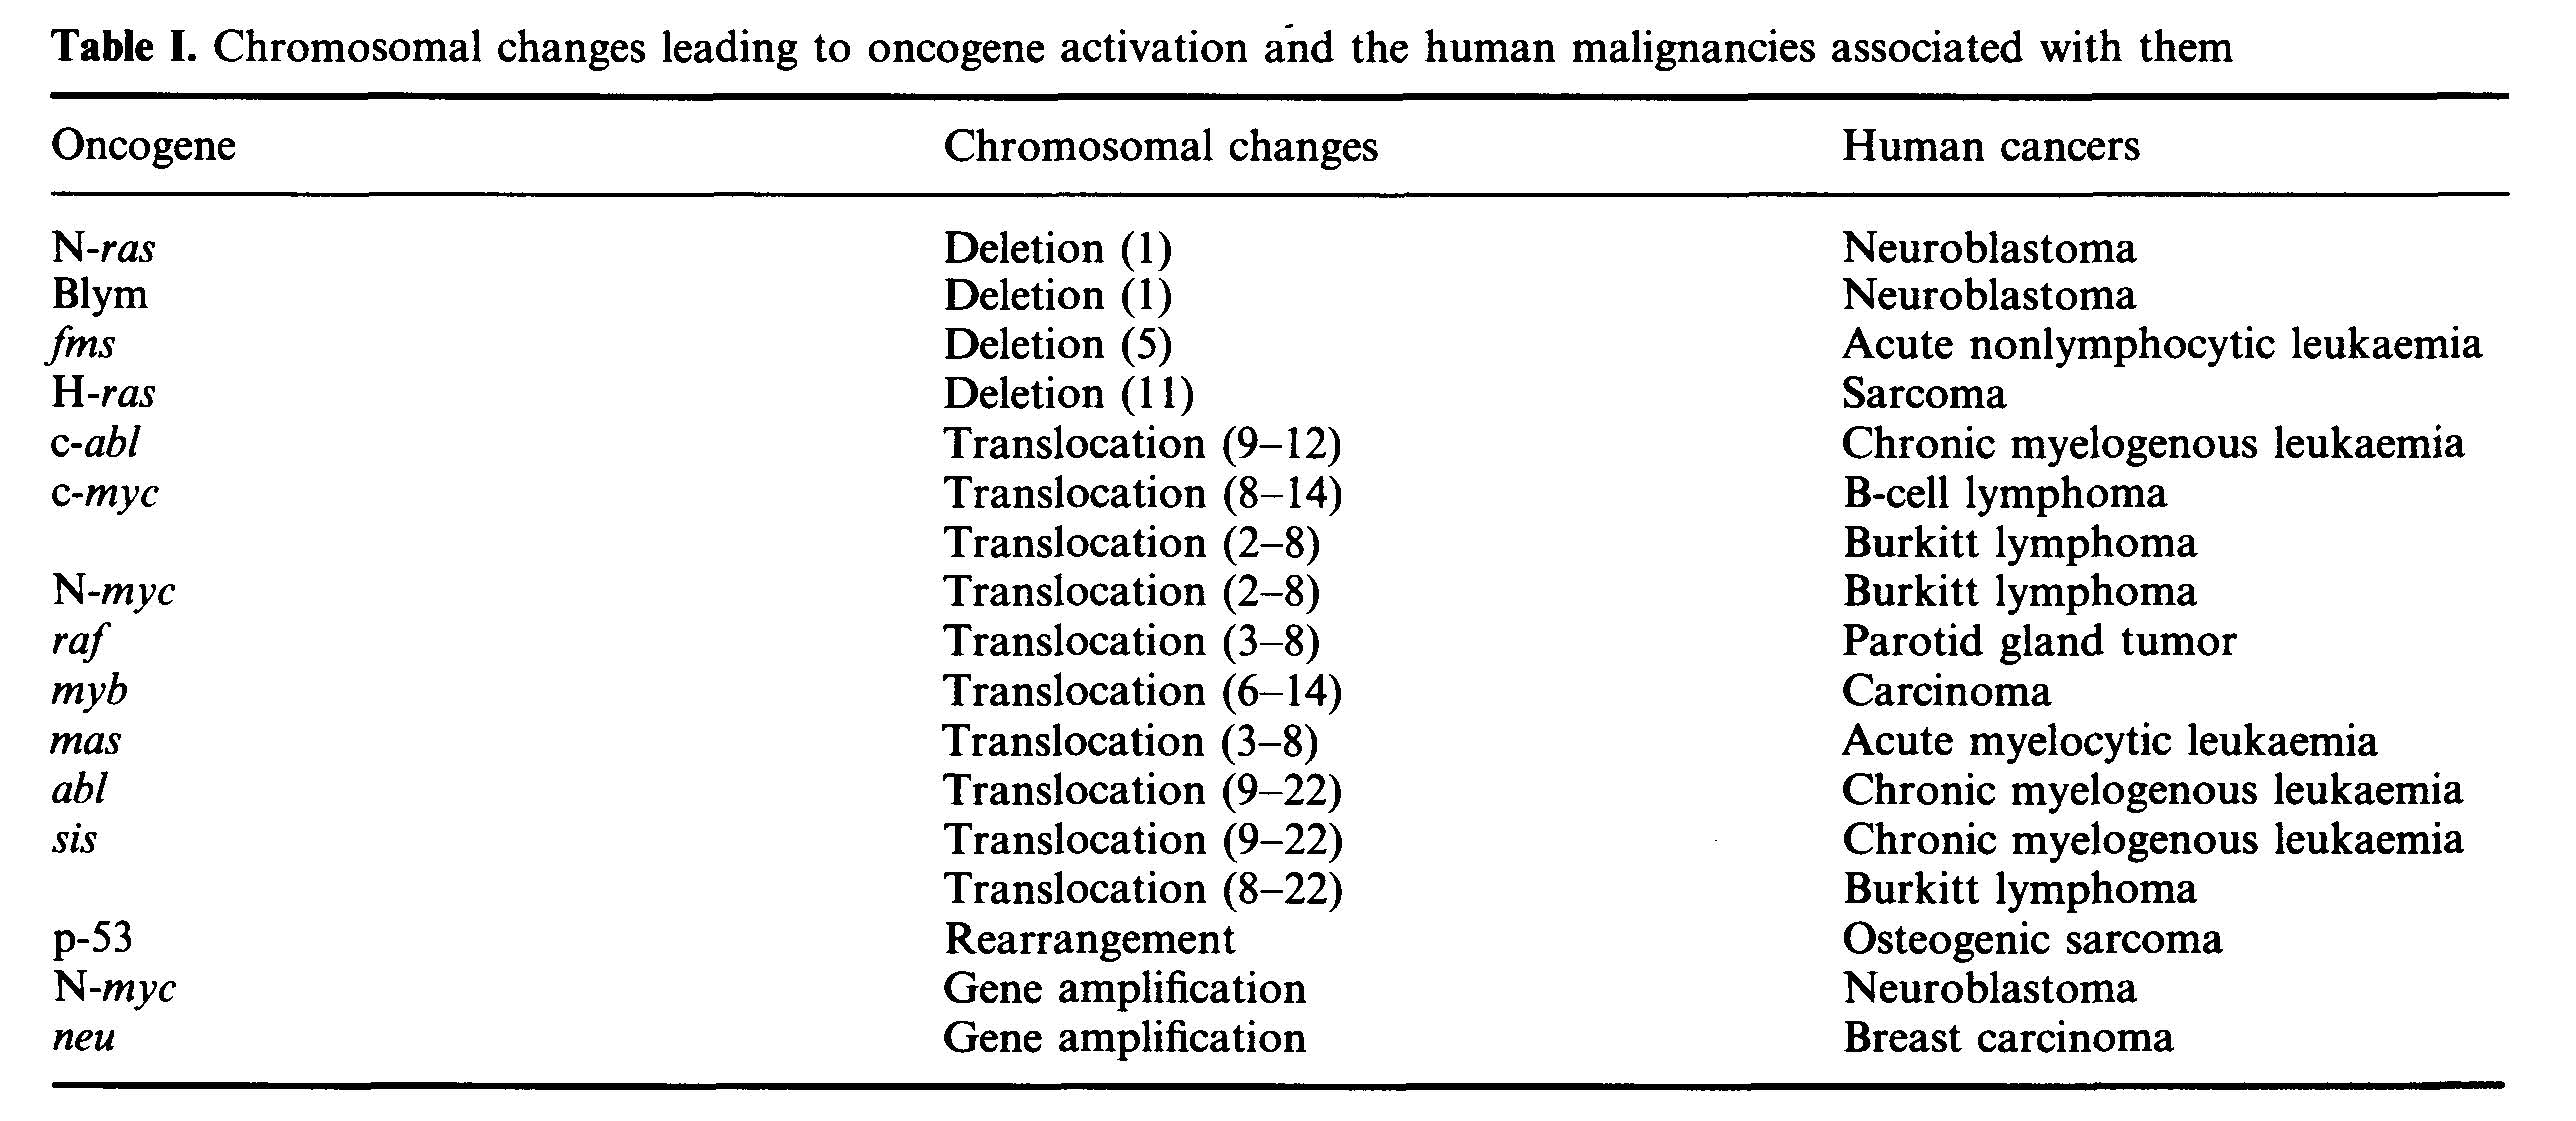 Oncogenes and associated malignancies